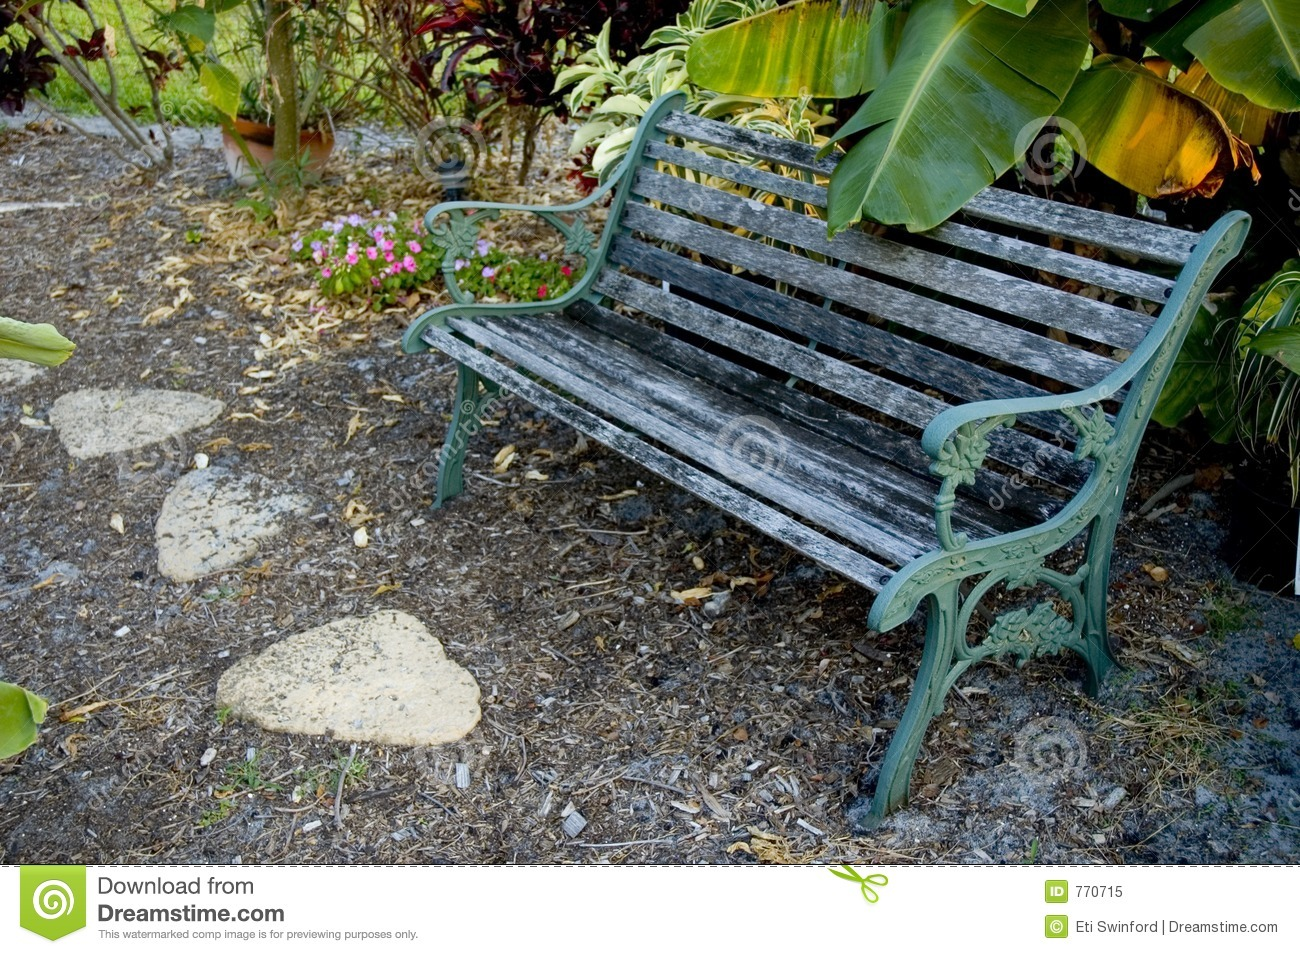 Banc de jardin photo libre de droits image 770715 for Banc de jardin square